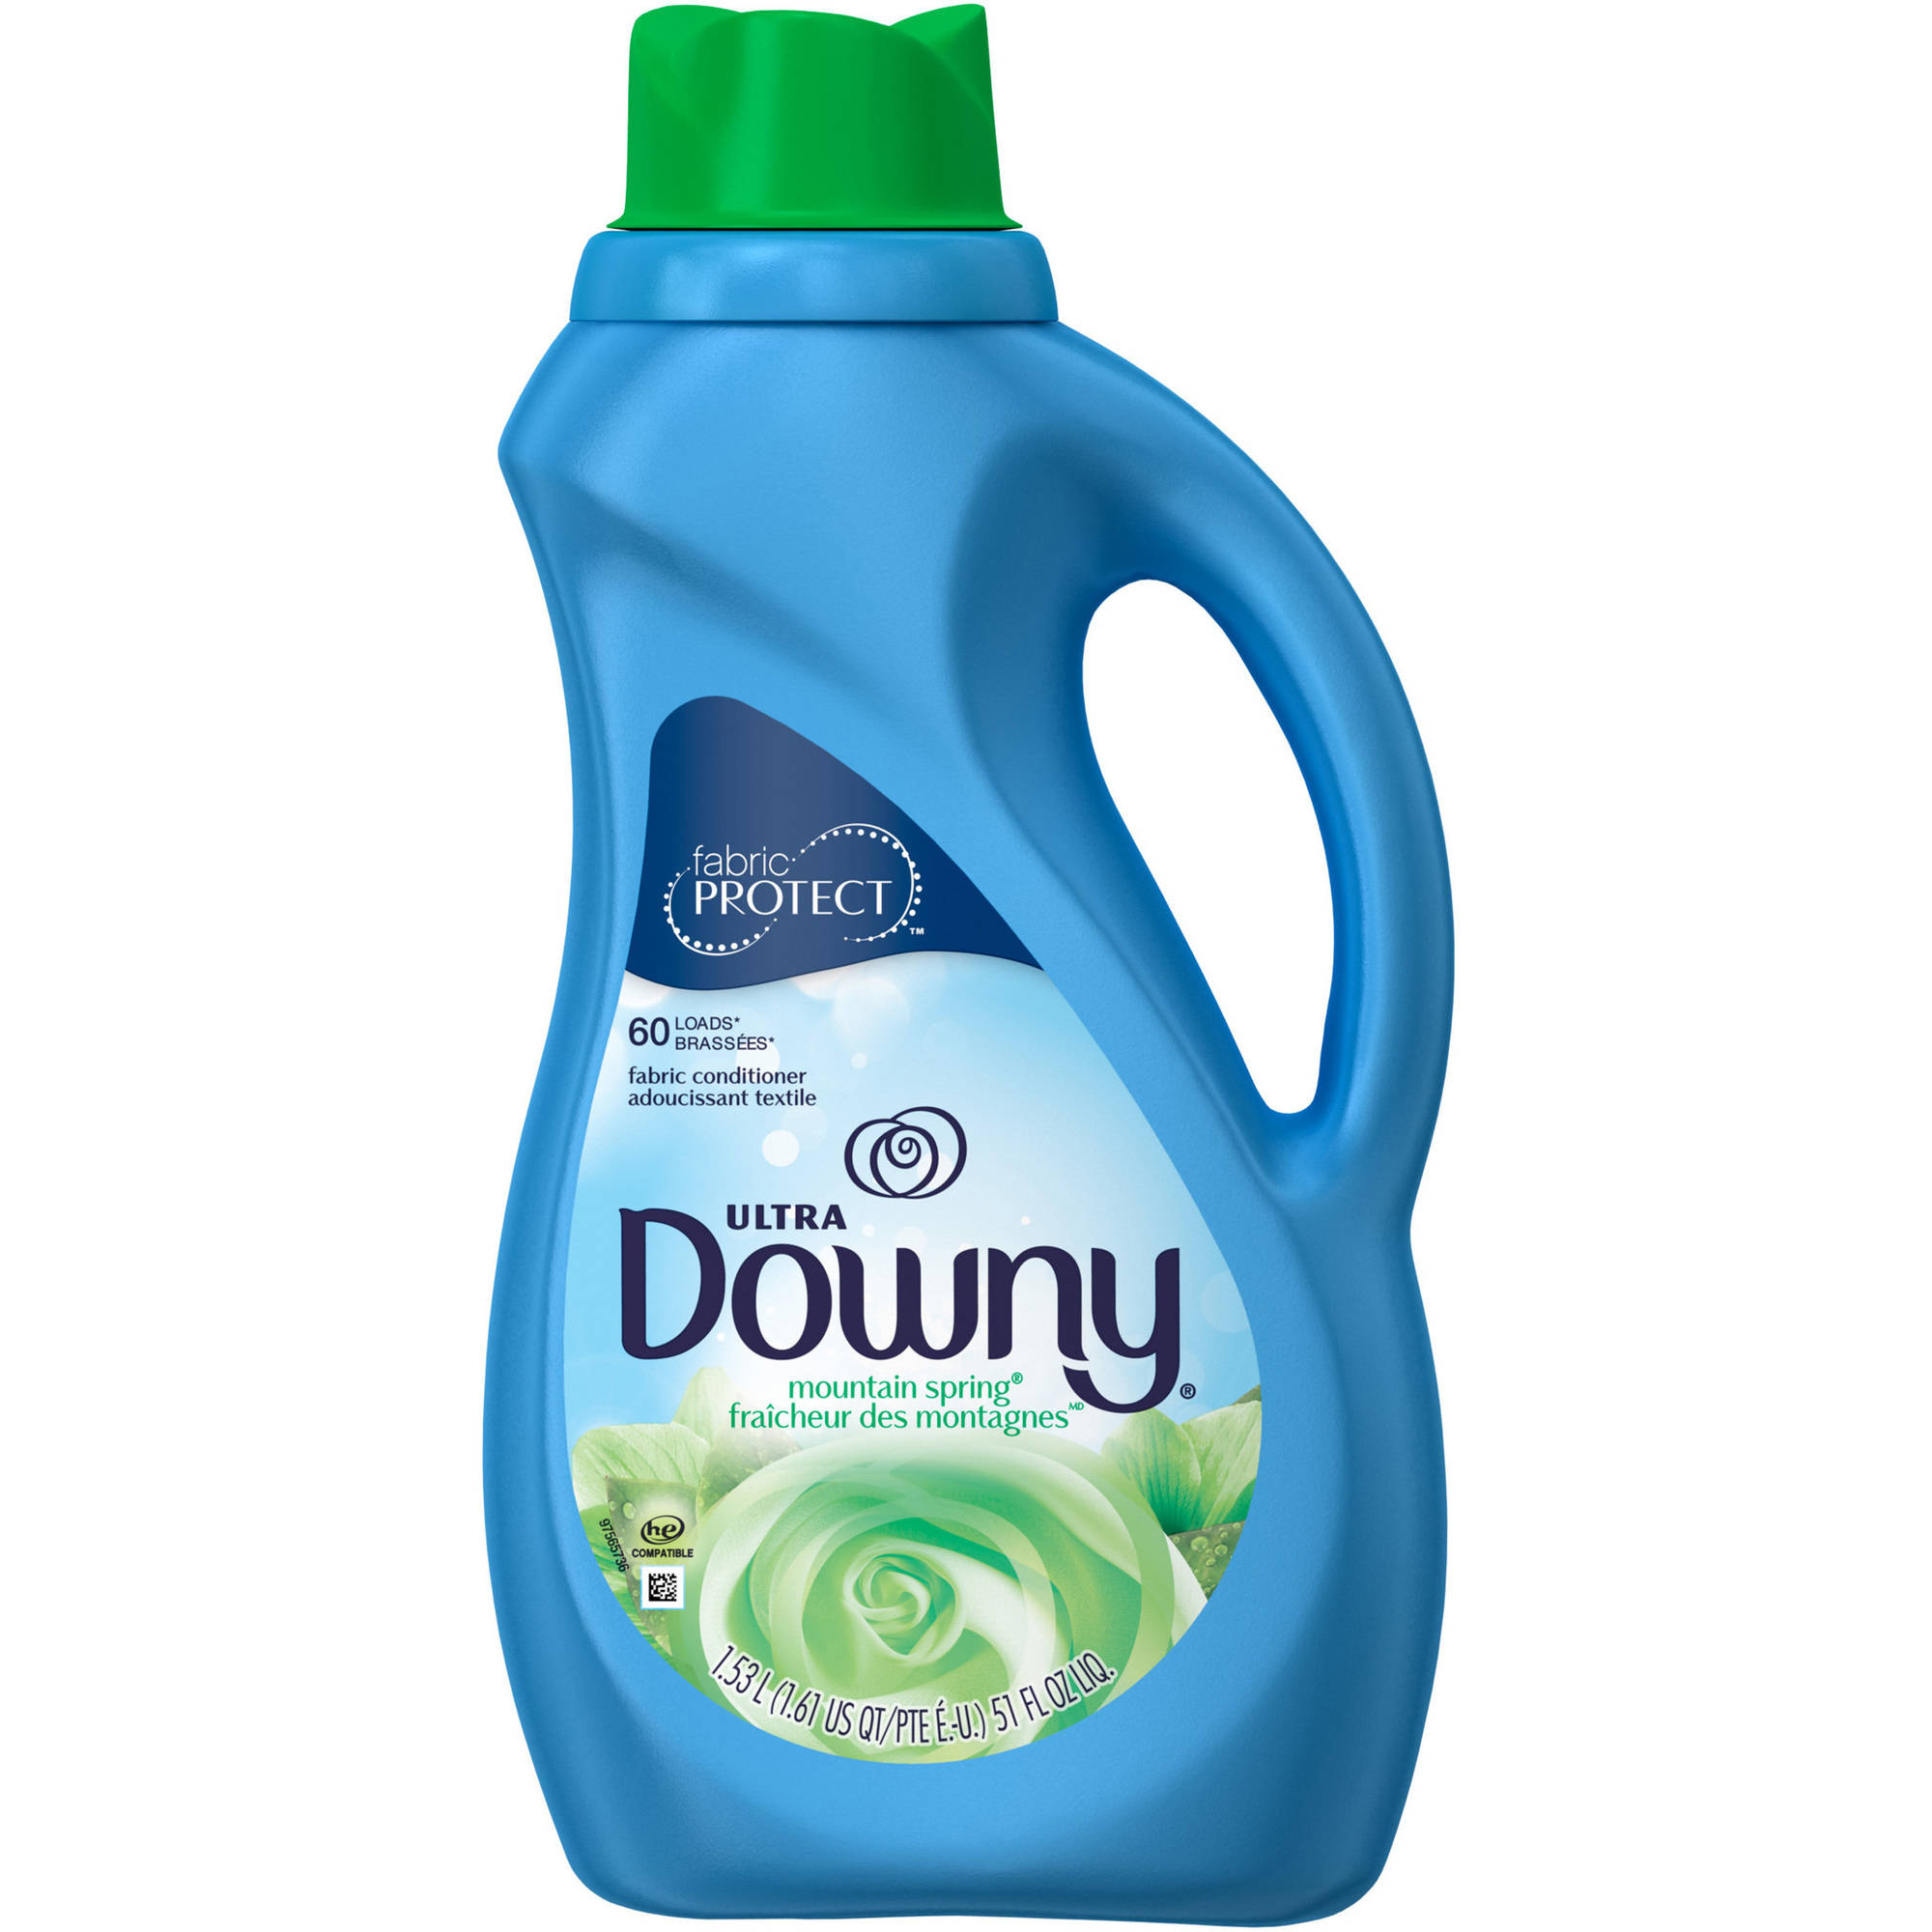 Ultra Downy Fabric Protect Mountain Spring Liquid Fabric Conditioner, 51 fl oz